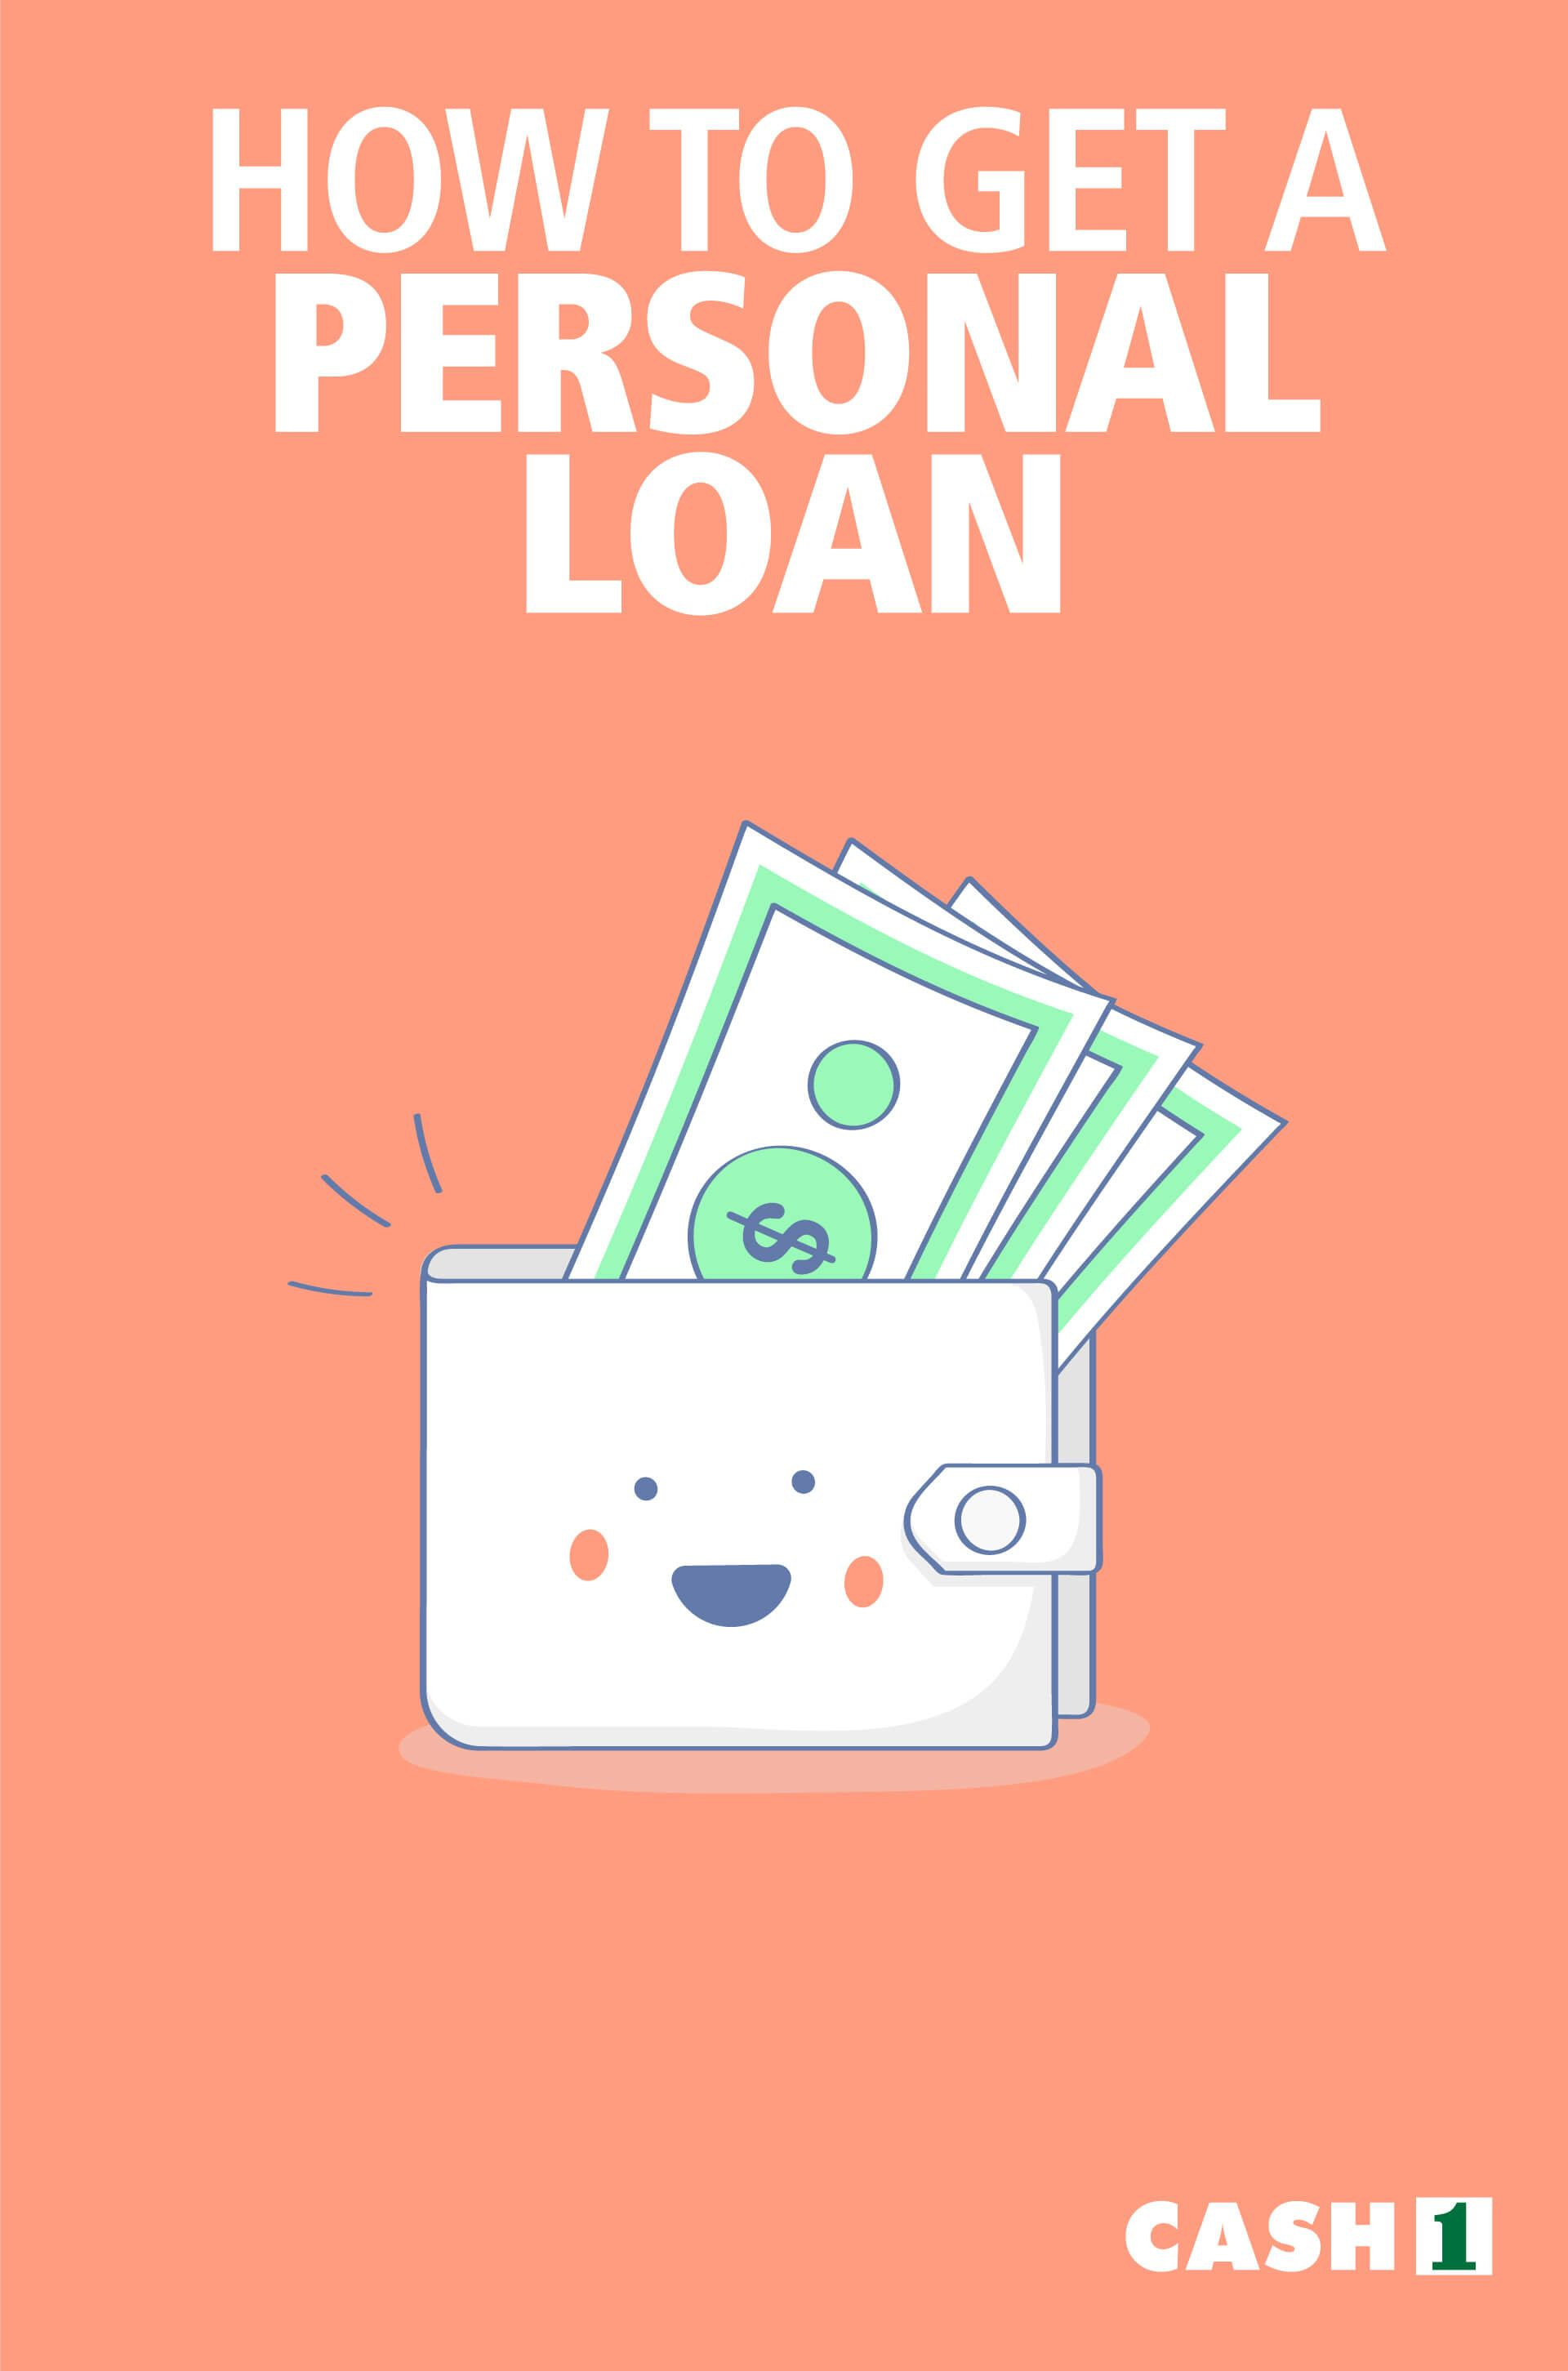 Find Out The Requirements On How To Get A Personal Loan In Nevada And What Are The Steps You Should Take To Ensure That You Qua Personal Loans How To Get